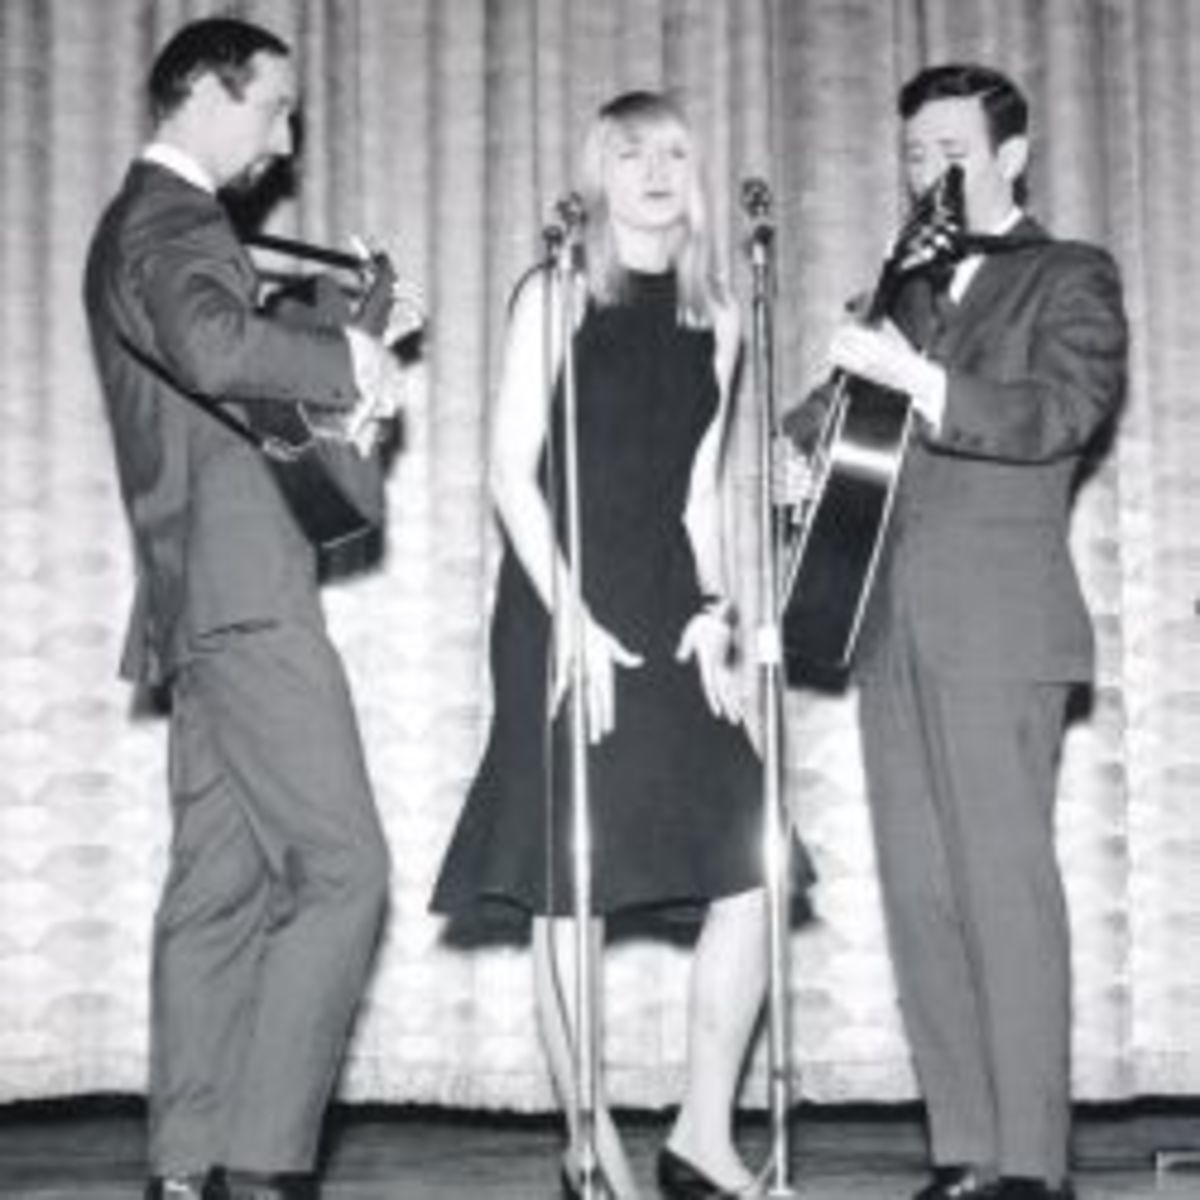 A Soalin' by Peter, Paul and Mary